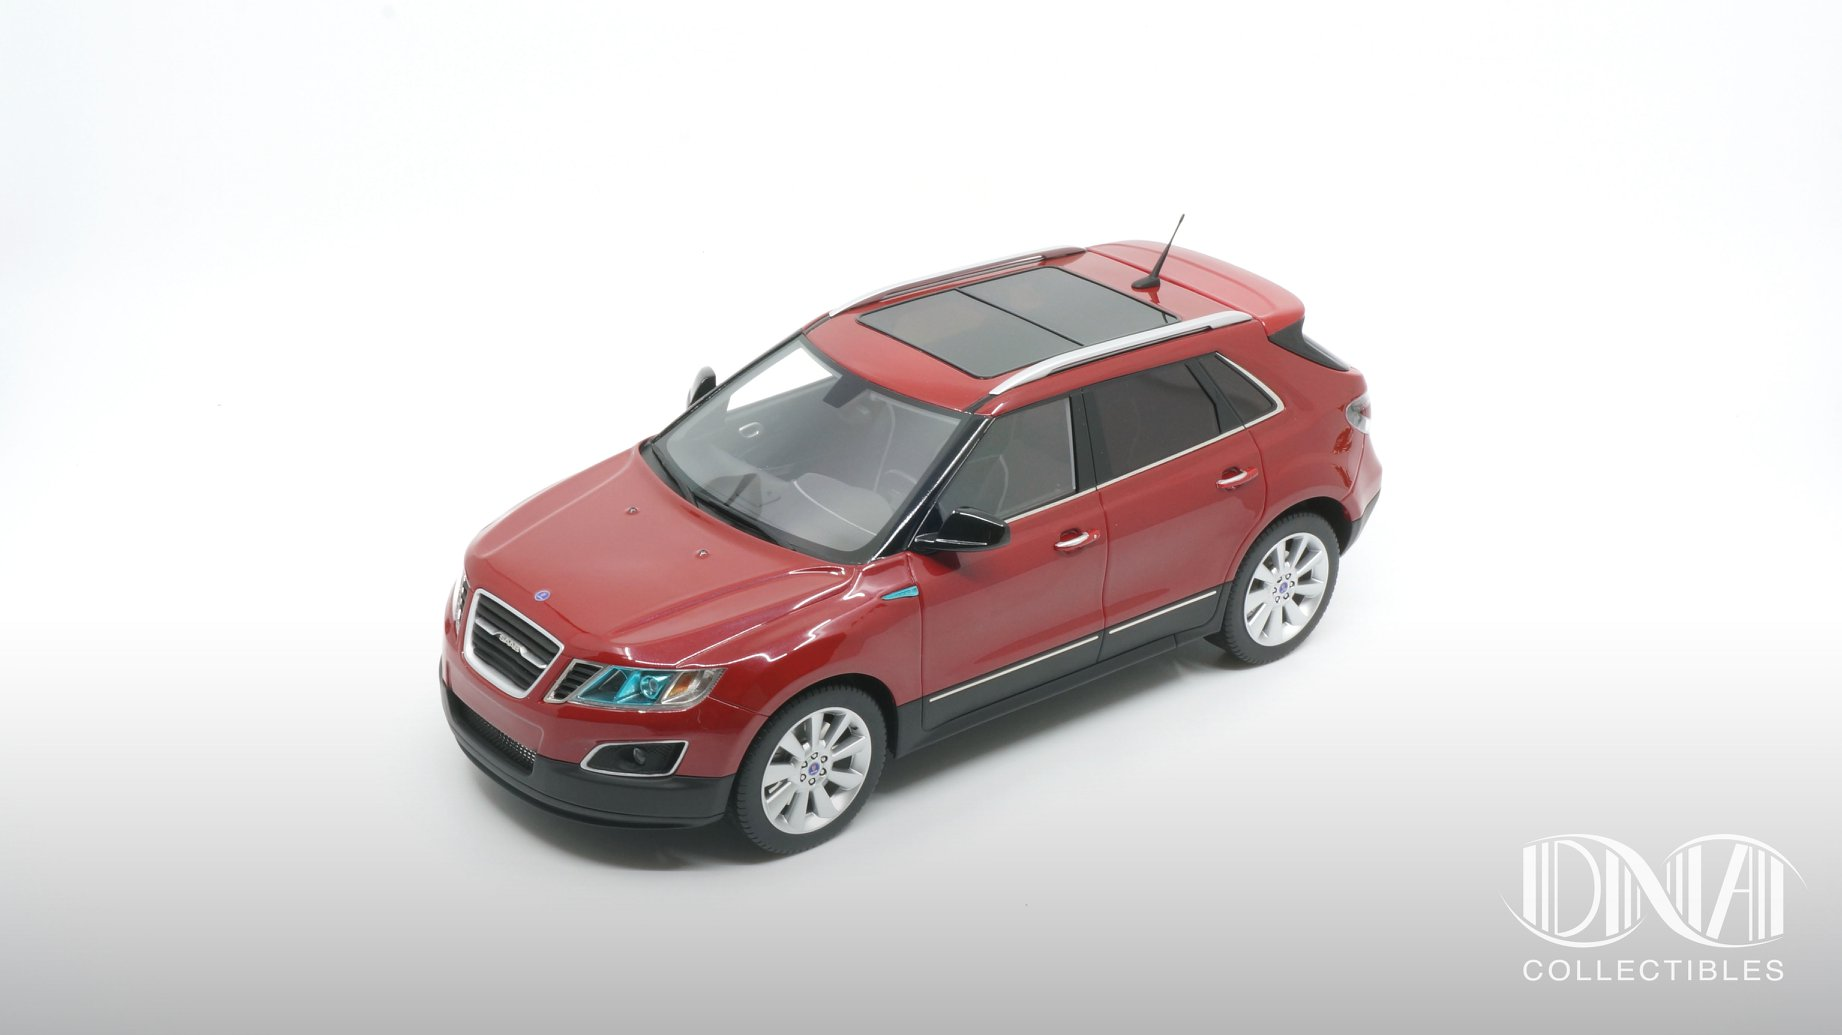 saab-9-4x-dna-collectiles-dna000032-ouvrants